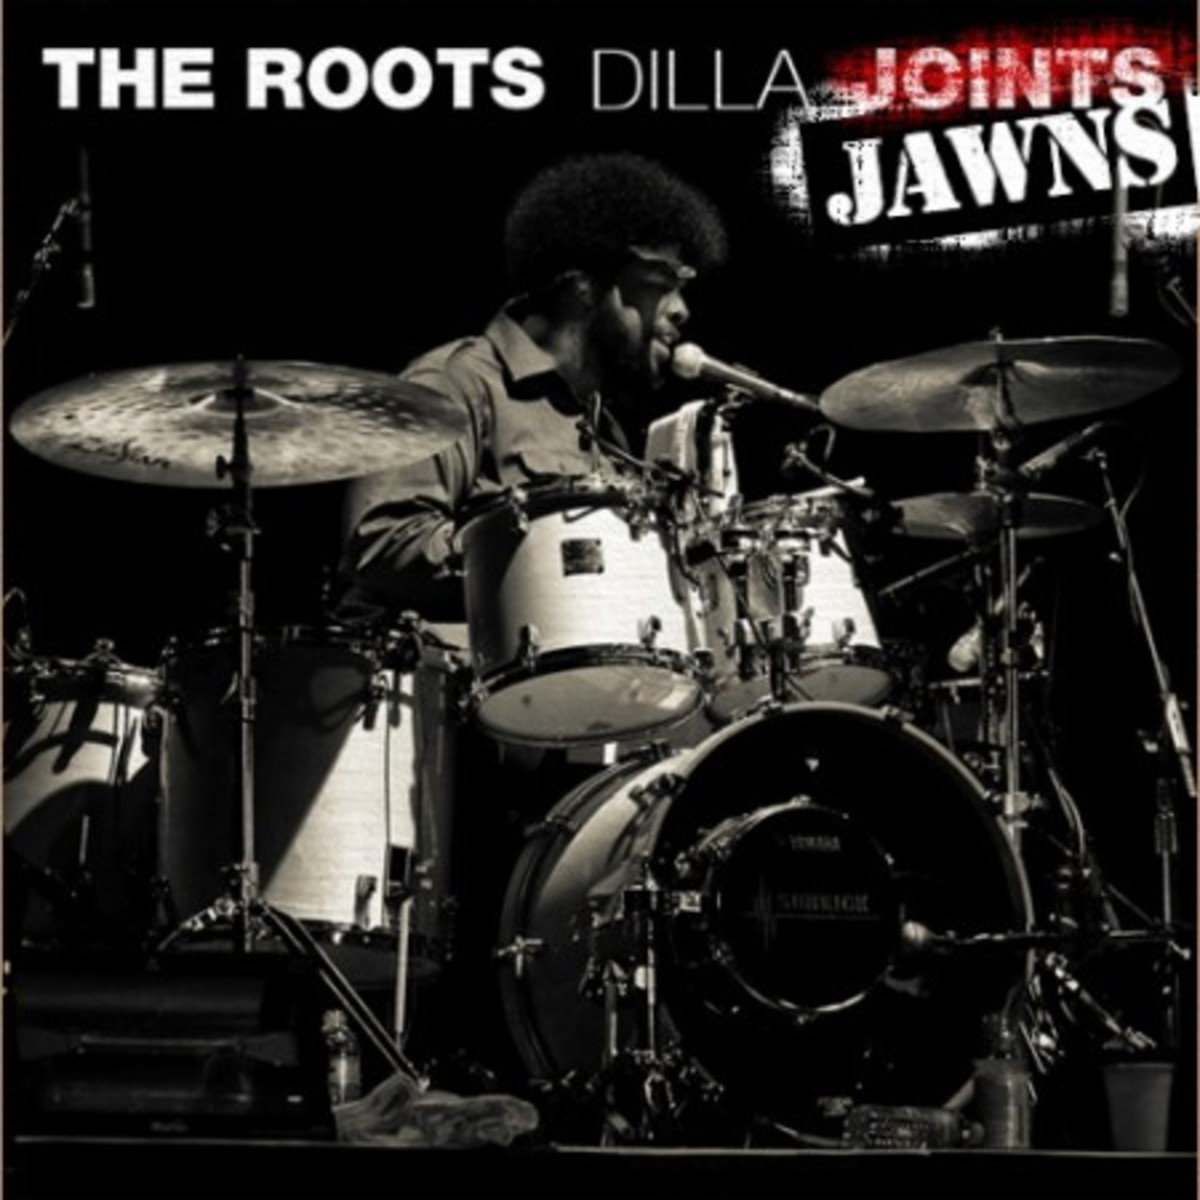 the-rootz-dilla-jawns-1